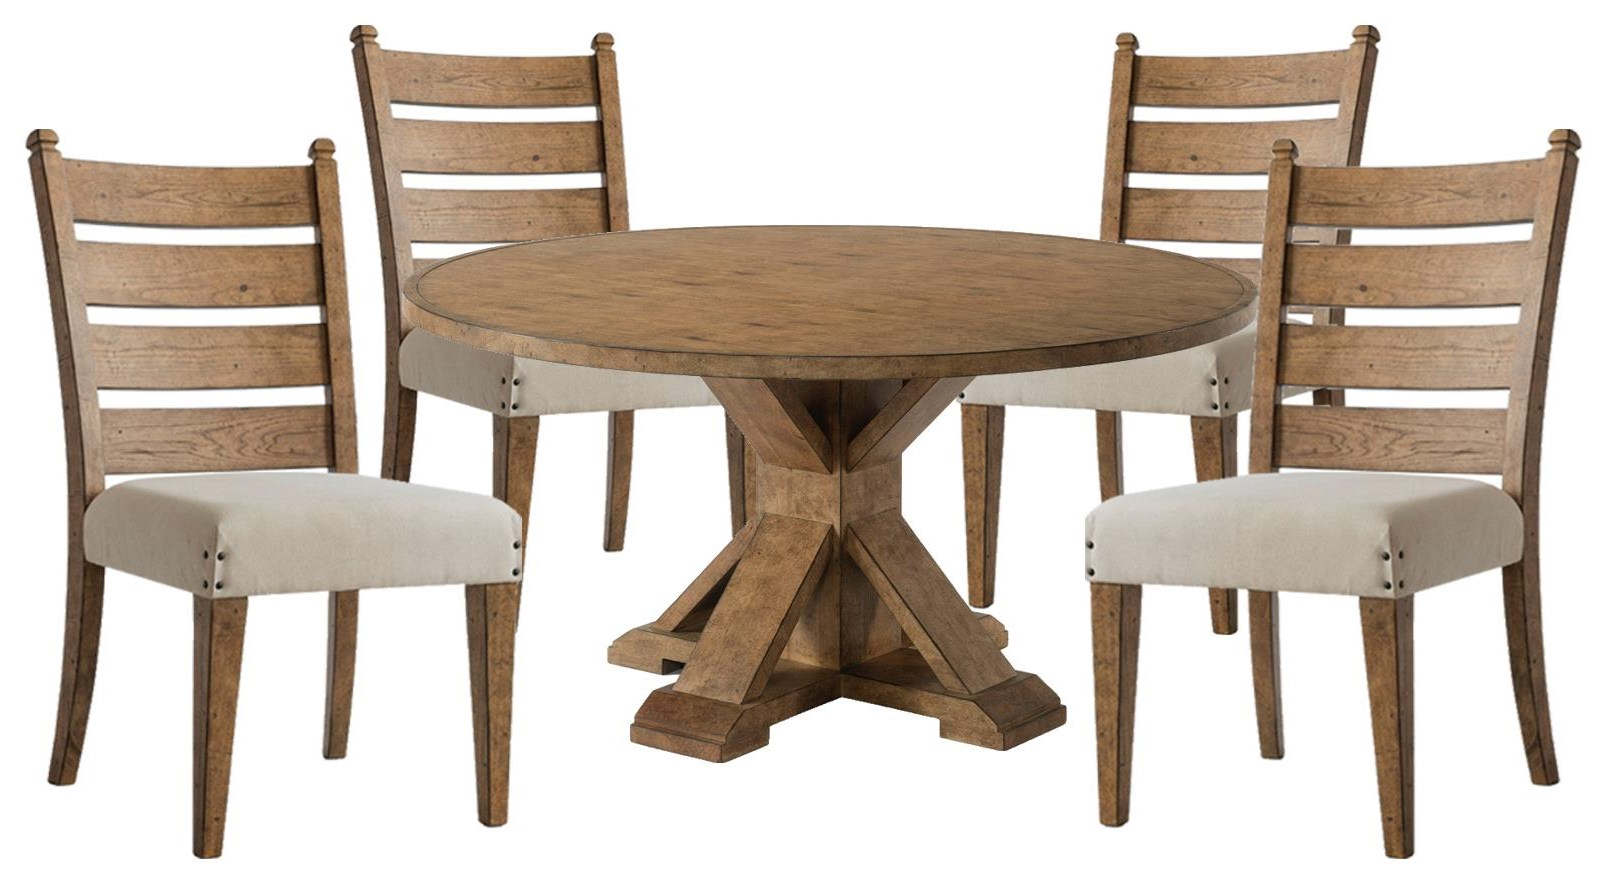 Coming Home Round Table and Side Chairs by Trisha Yearwood Home Collection by Klaussner at Johnny Janosik